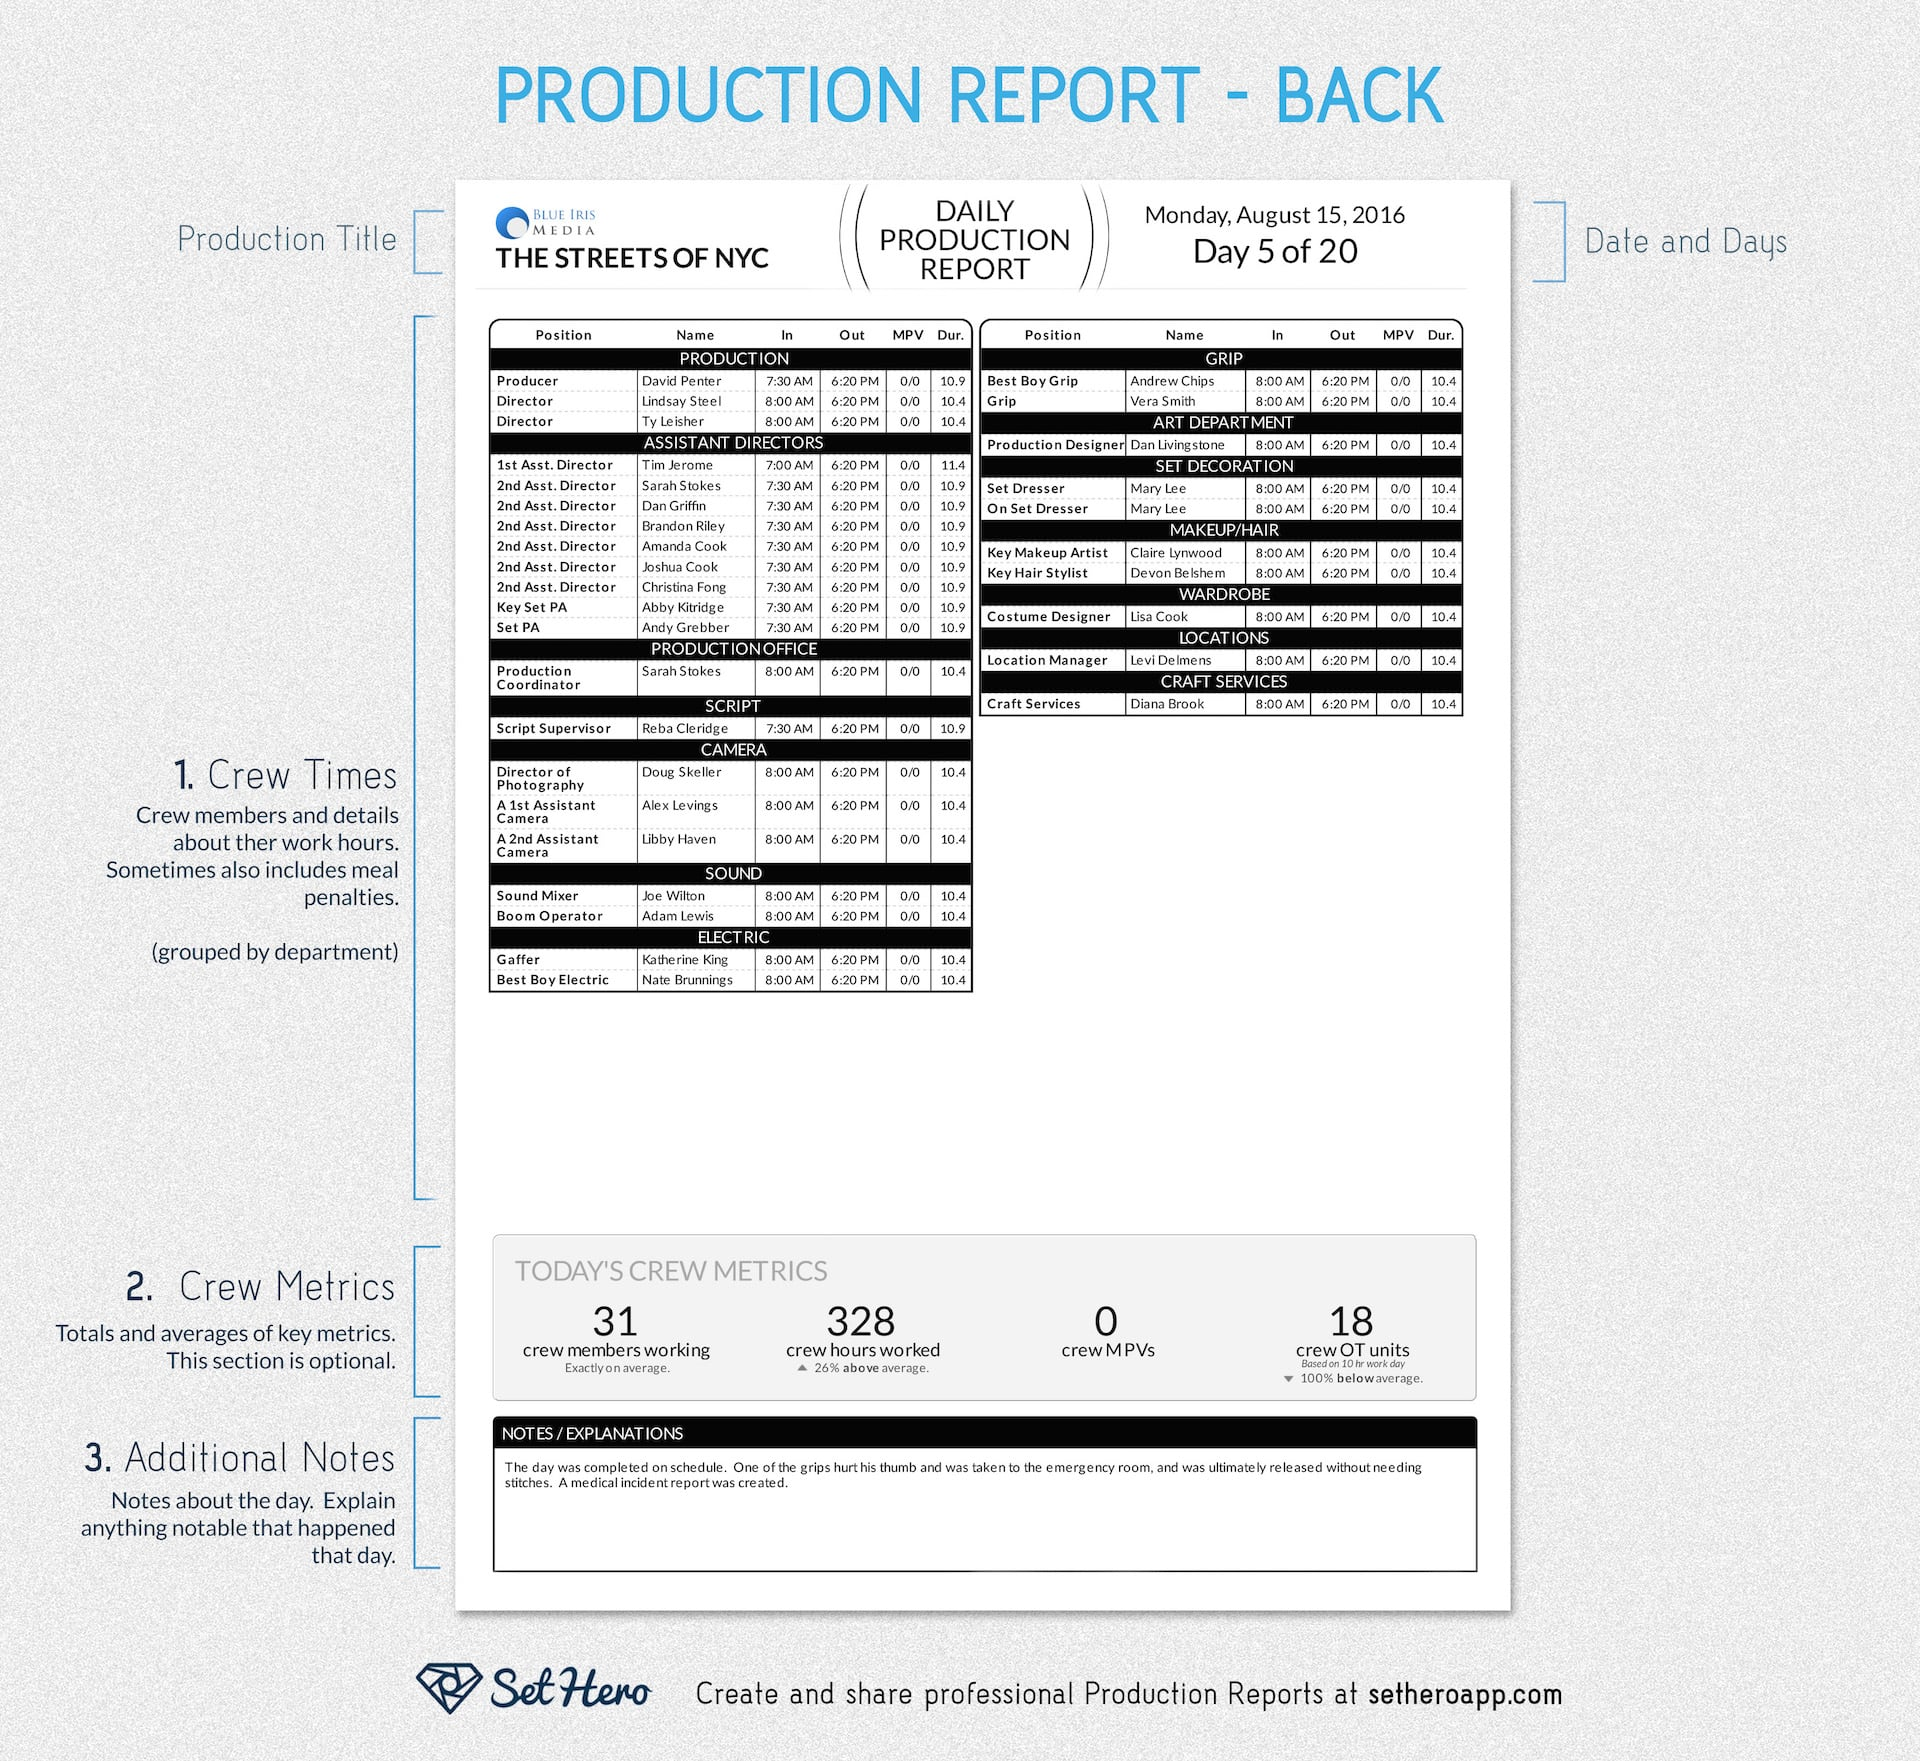 Daily Production Report Template Example Back Medium